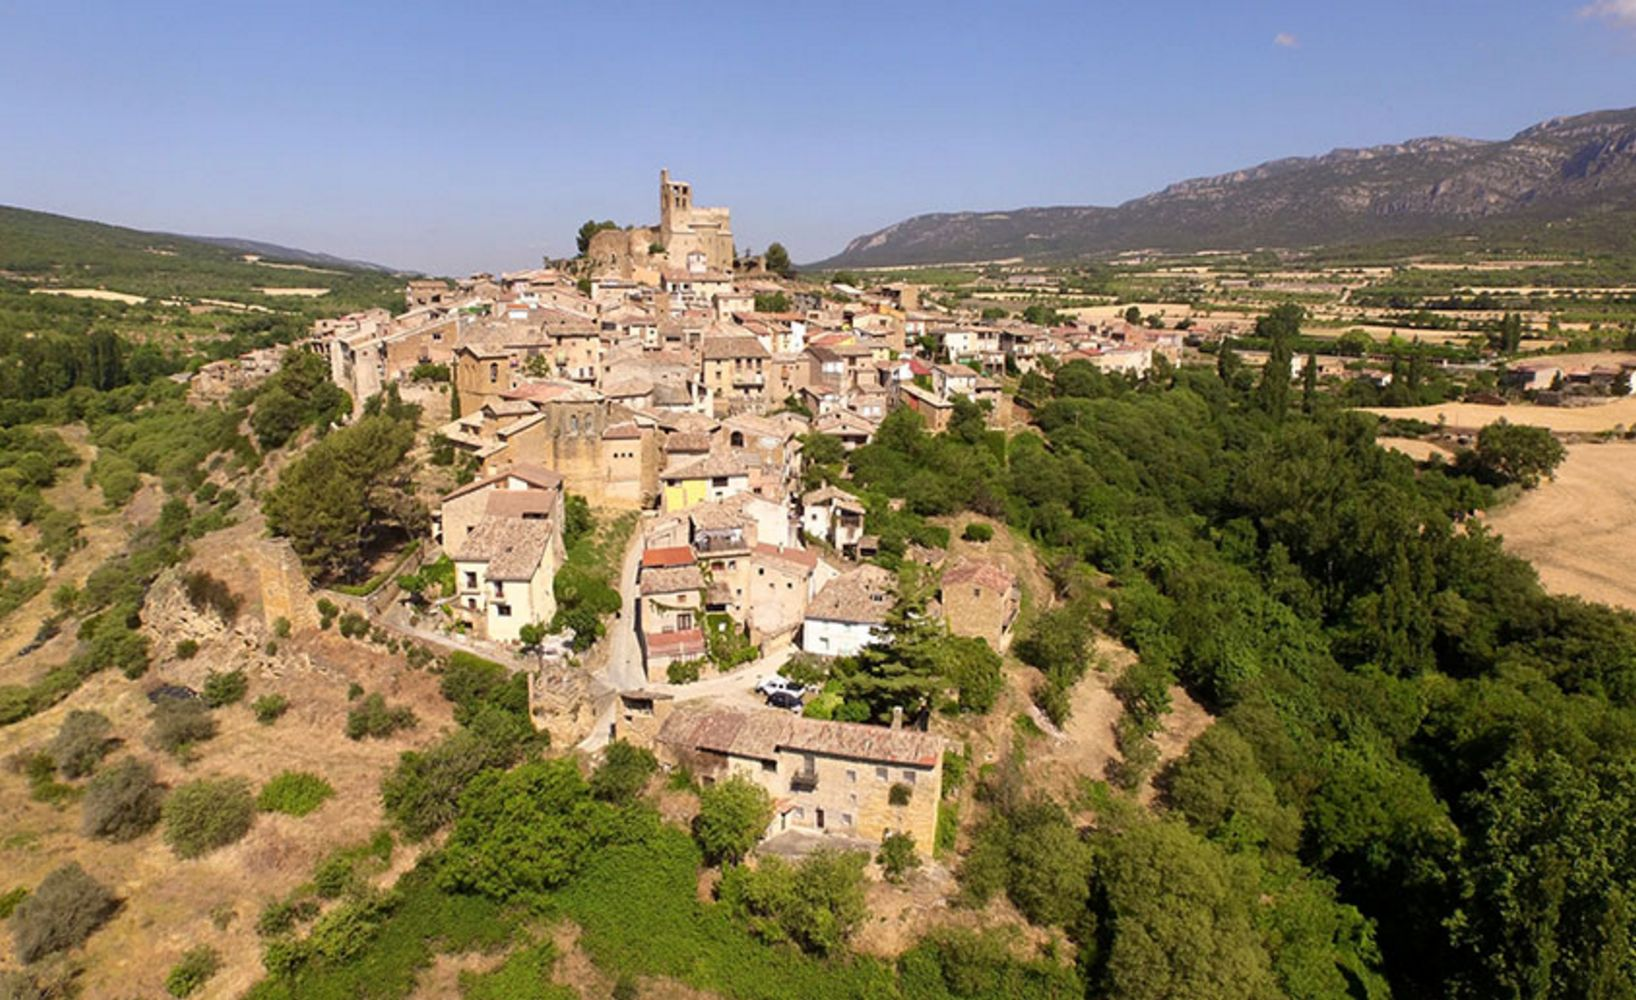 Ager, Lleida Province, Spain